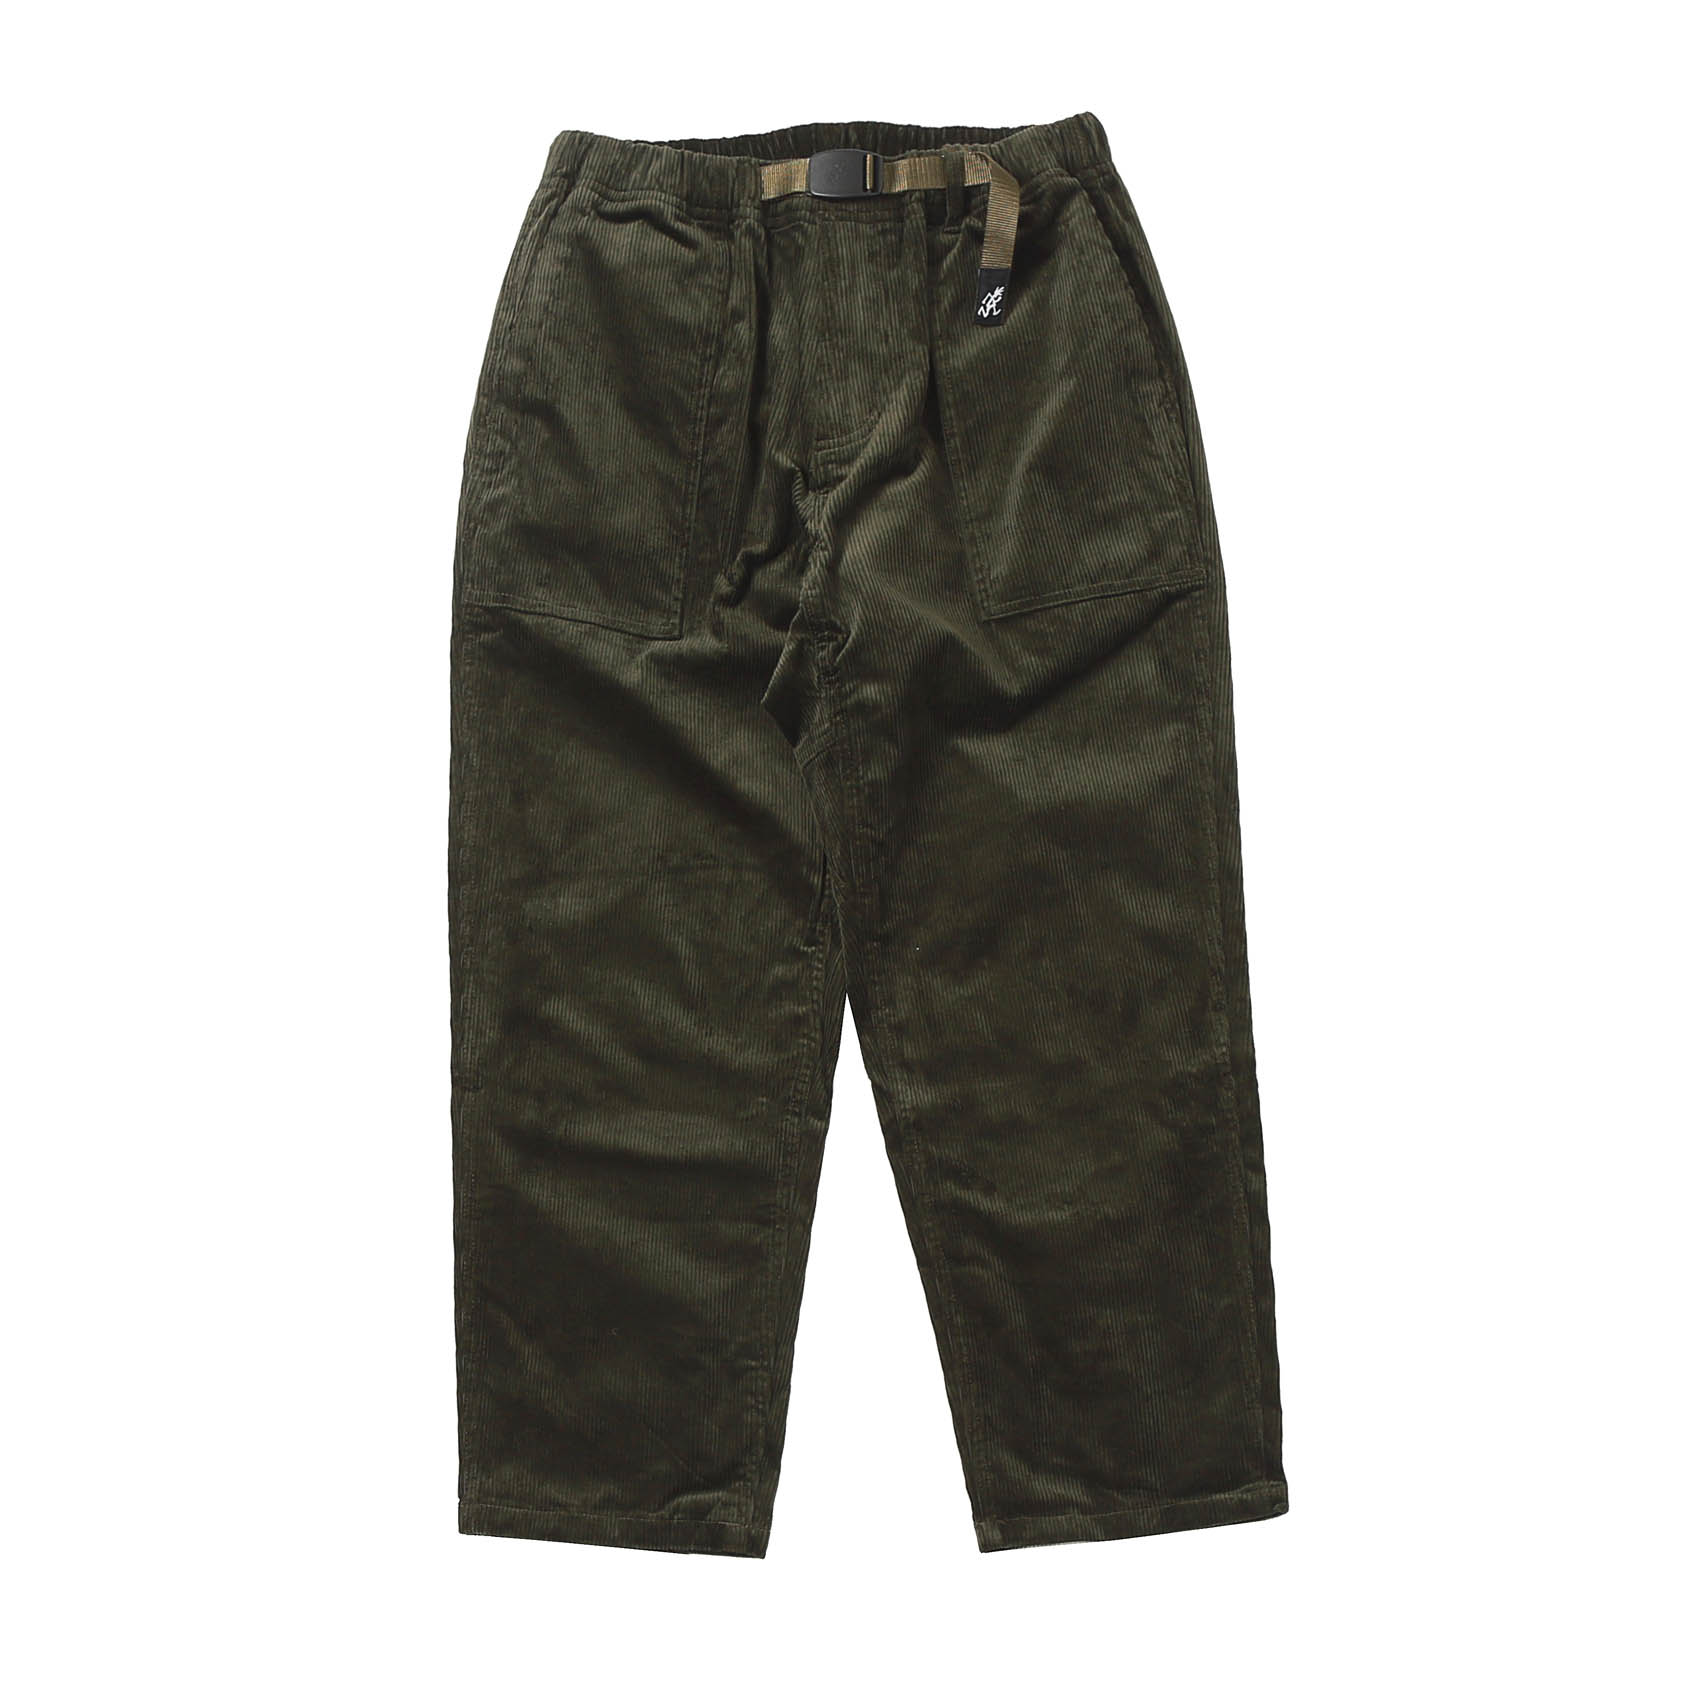 CORDUROY LOOSE TAPERED PANTS - OLIVE